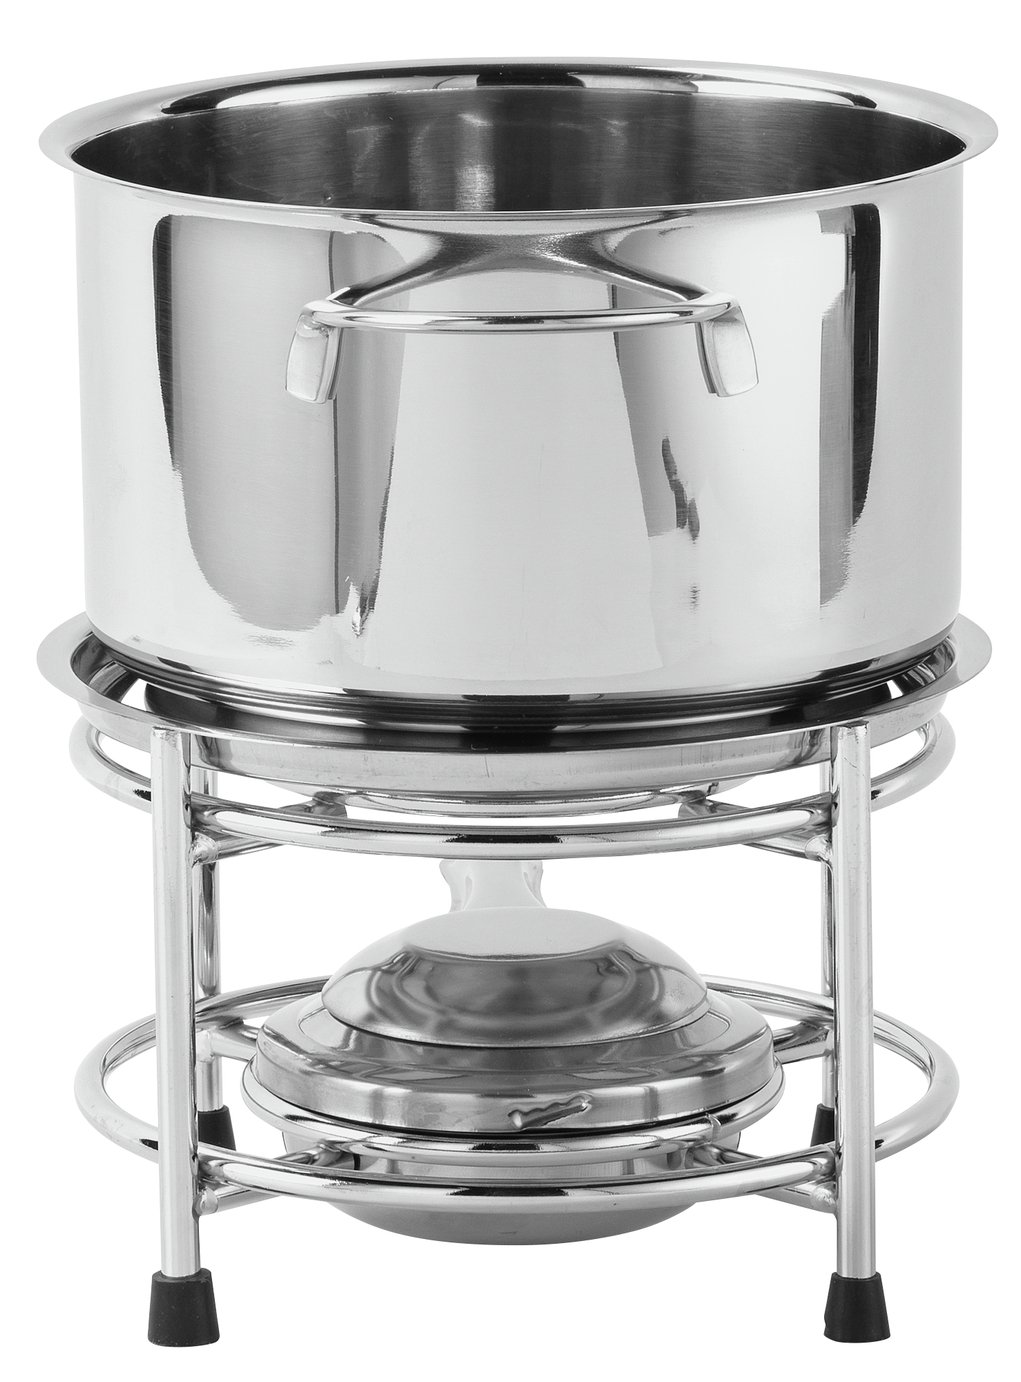 Argos Home Stainless Steel Fondue Set review